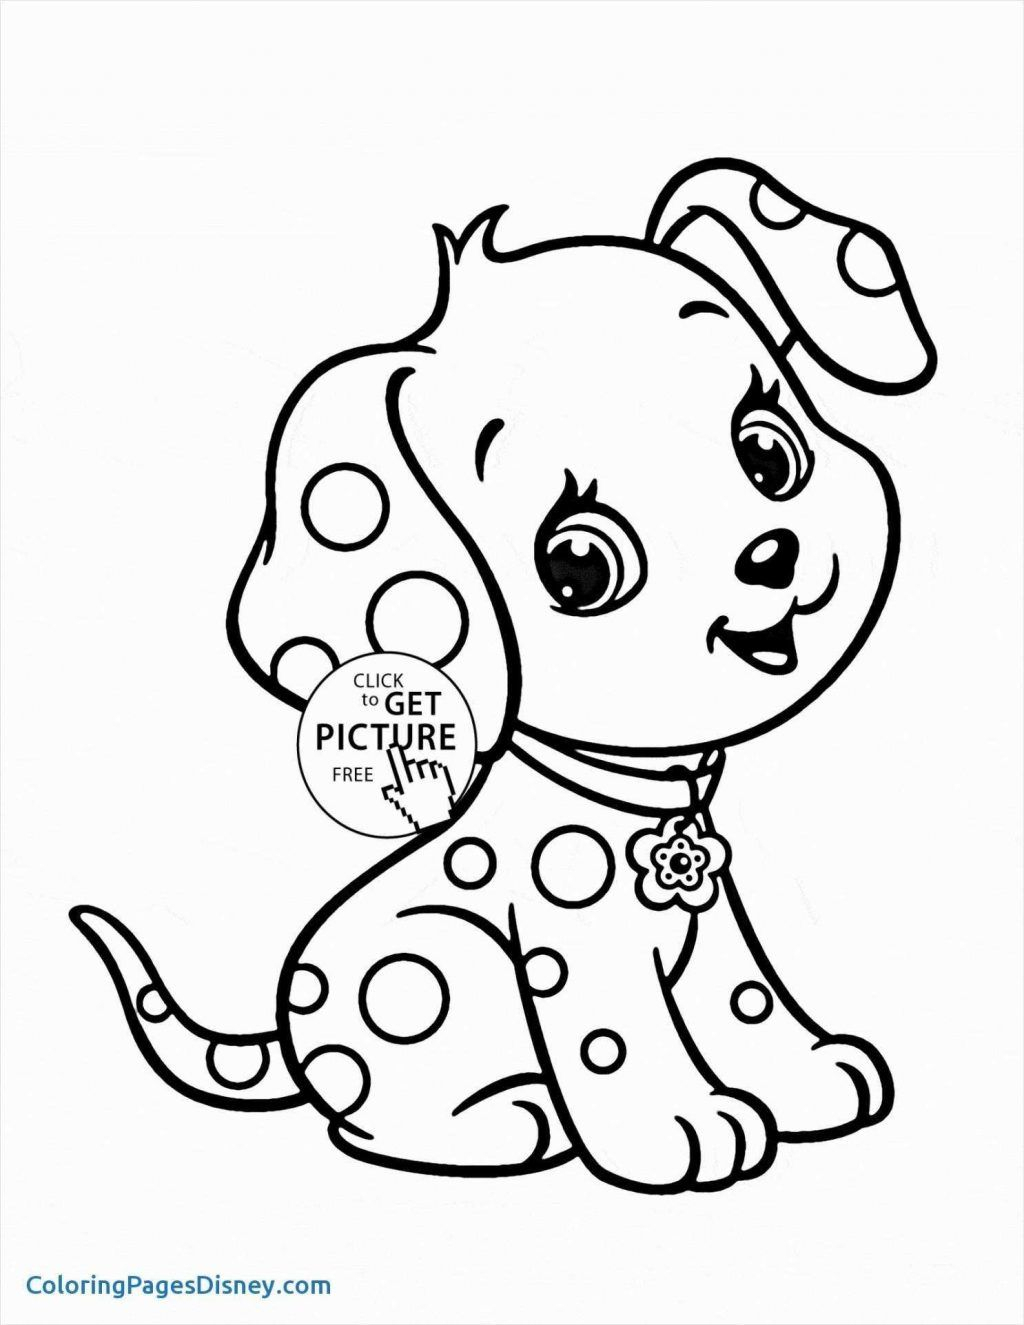 Disney Coloring Pages Free Coloring Pages Free Disney Coloring Pages Pdf Ba Lovely Color Of